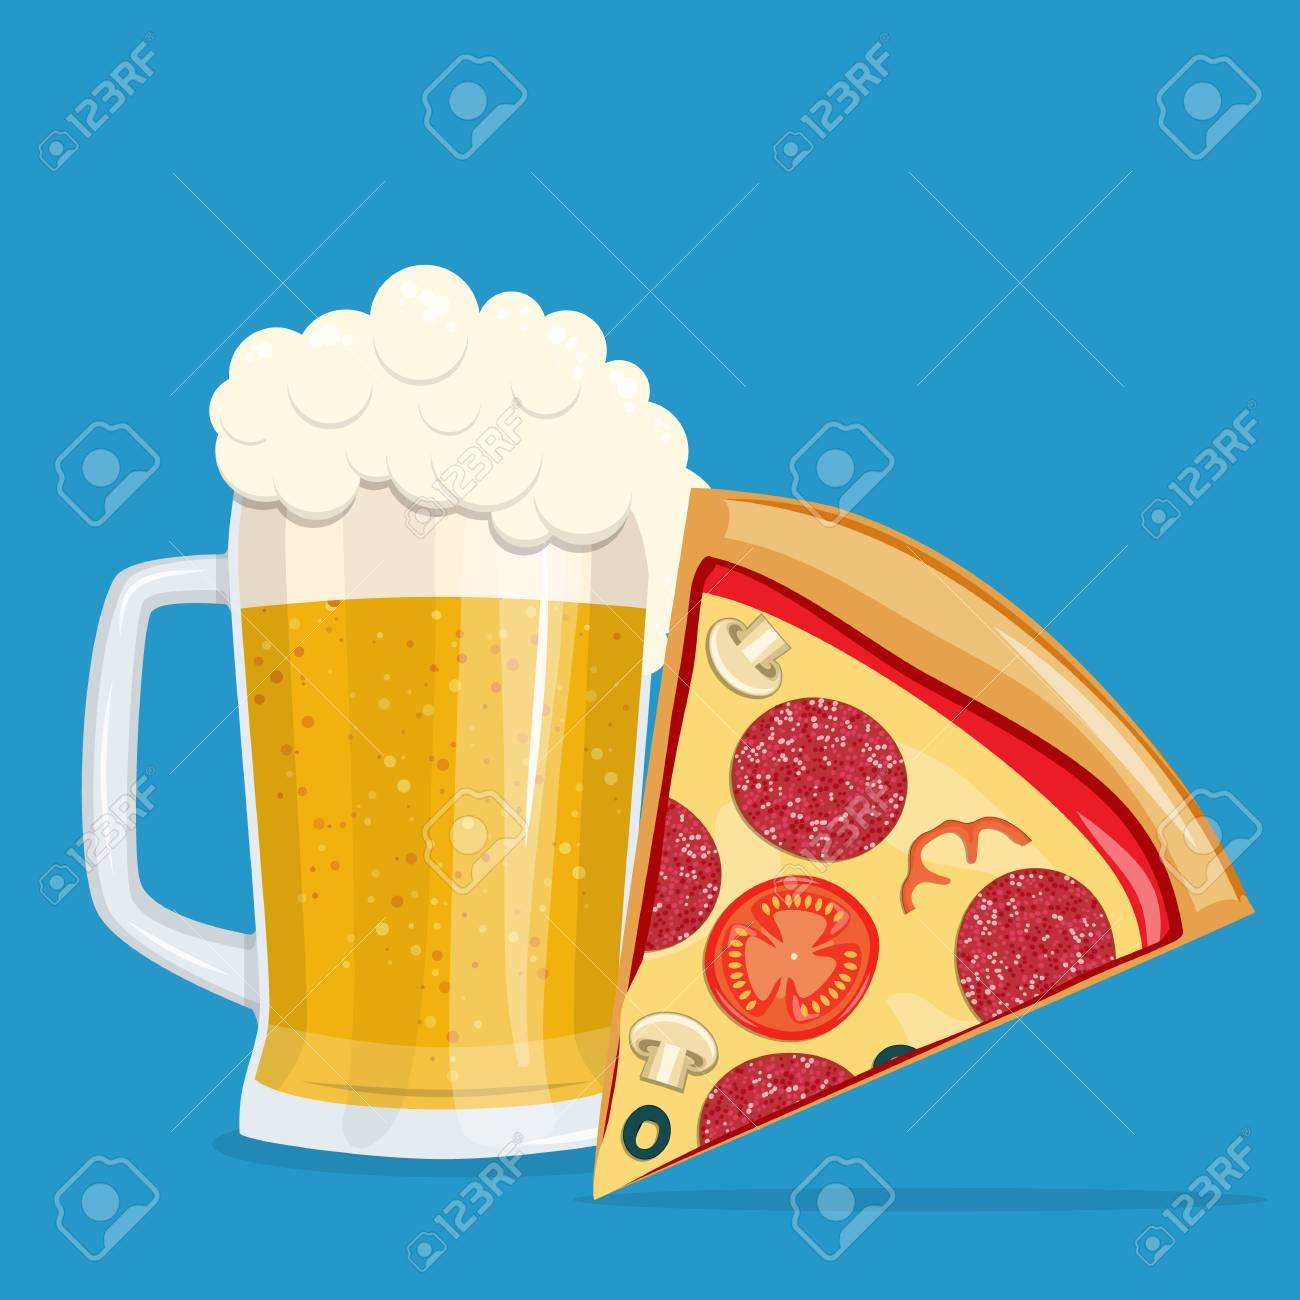 Beer and pizza. Vector illustration. - 95582322